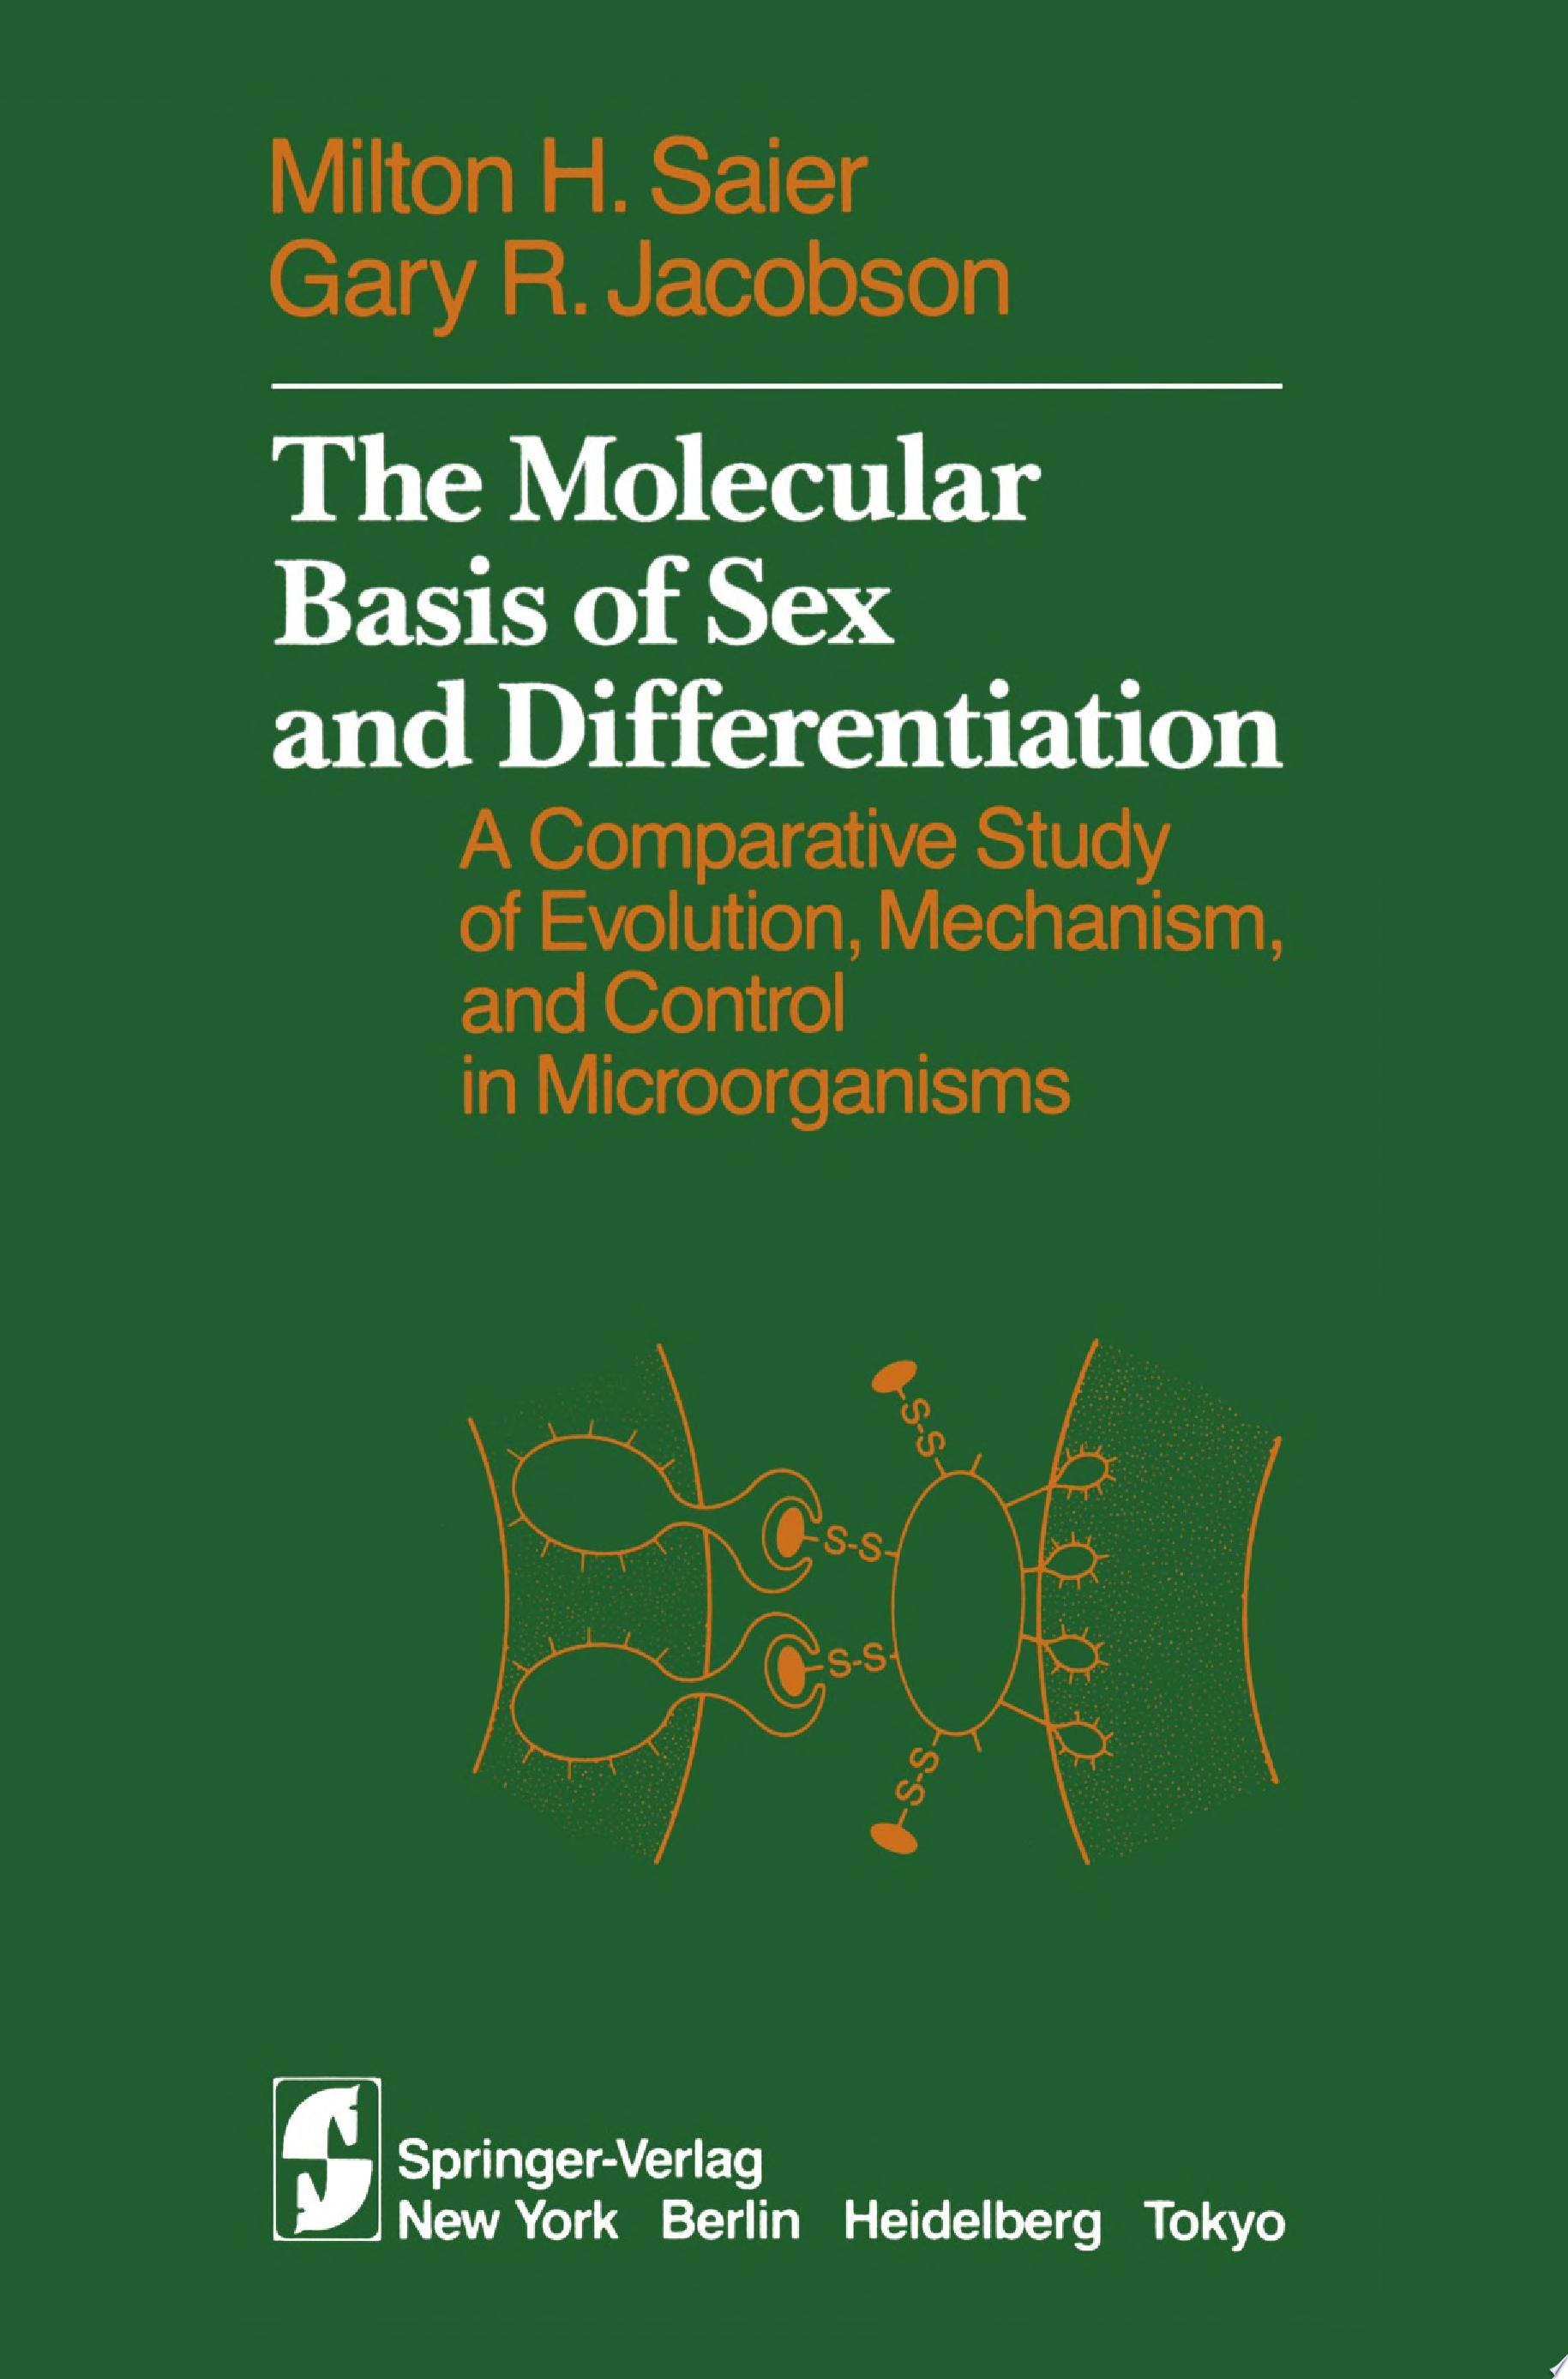 The Molecular Basis of Sex and Differentiation